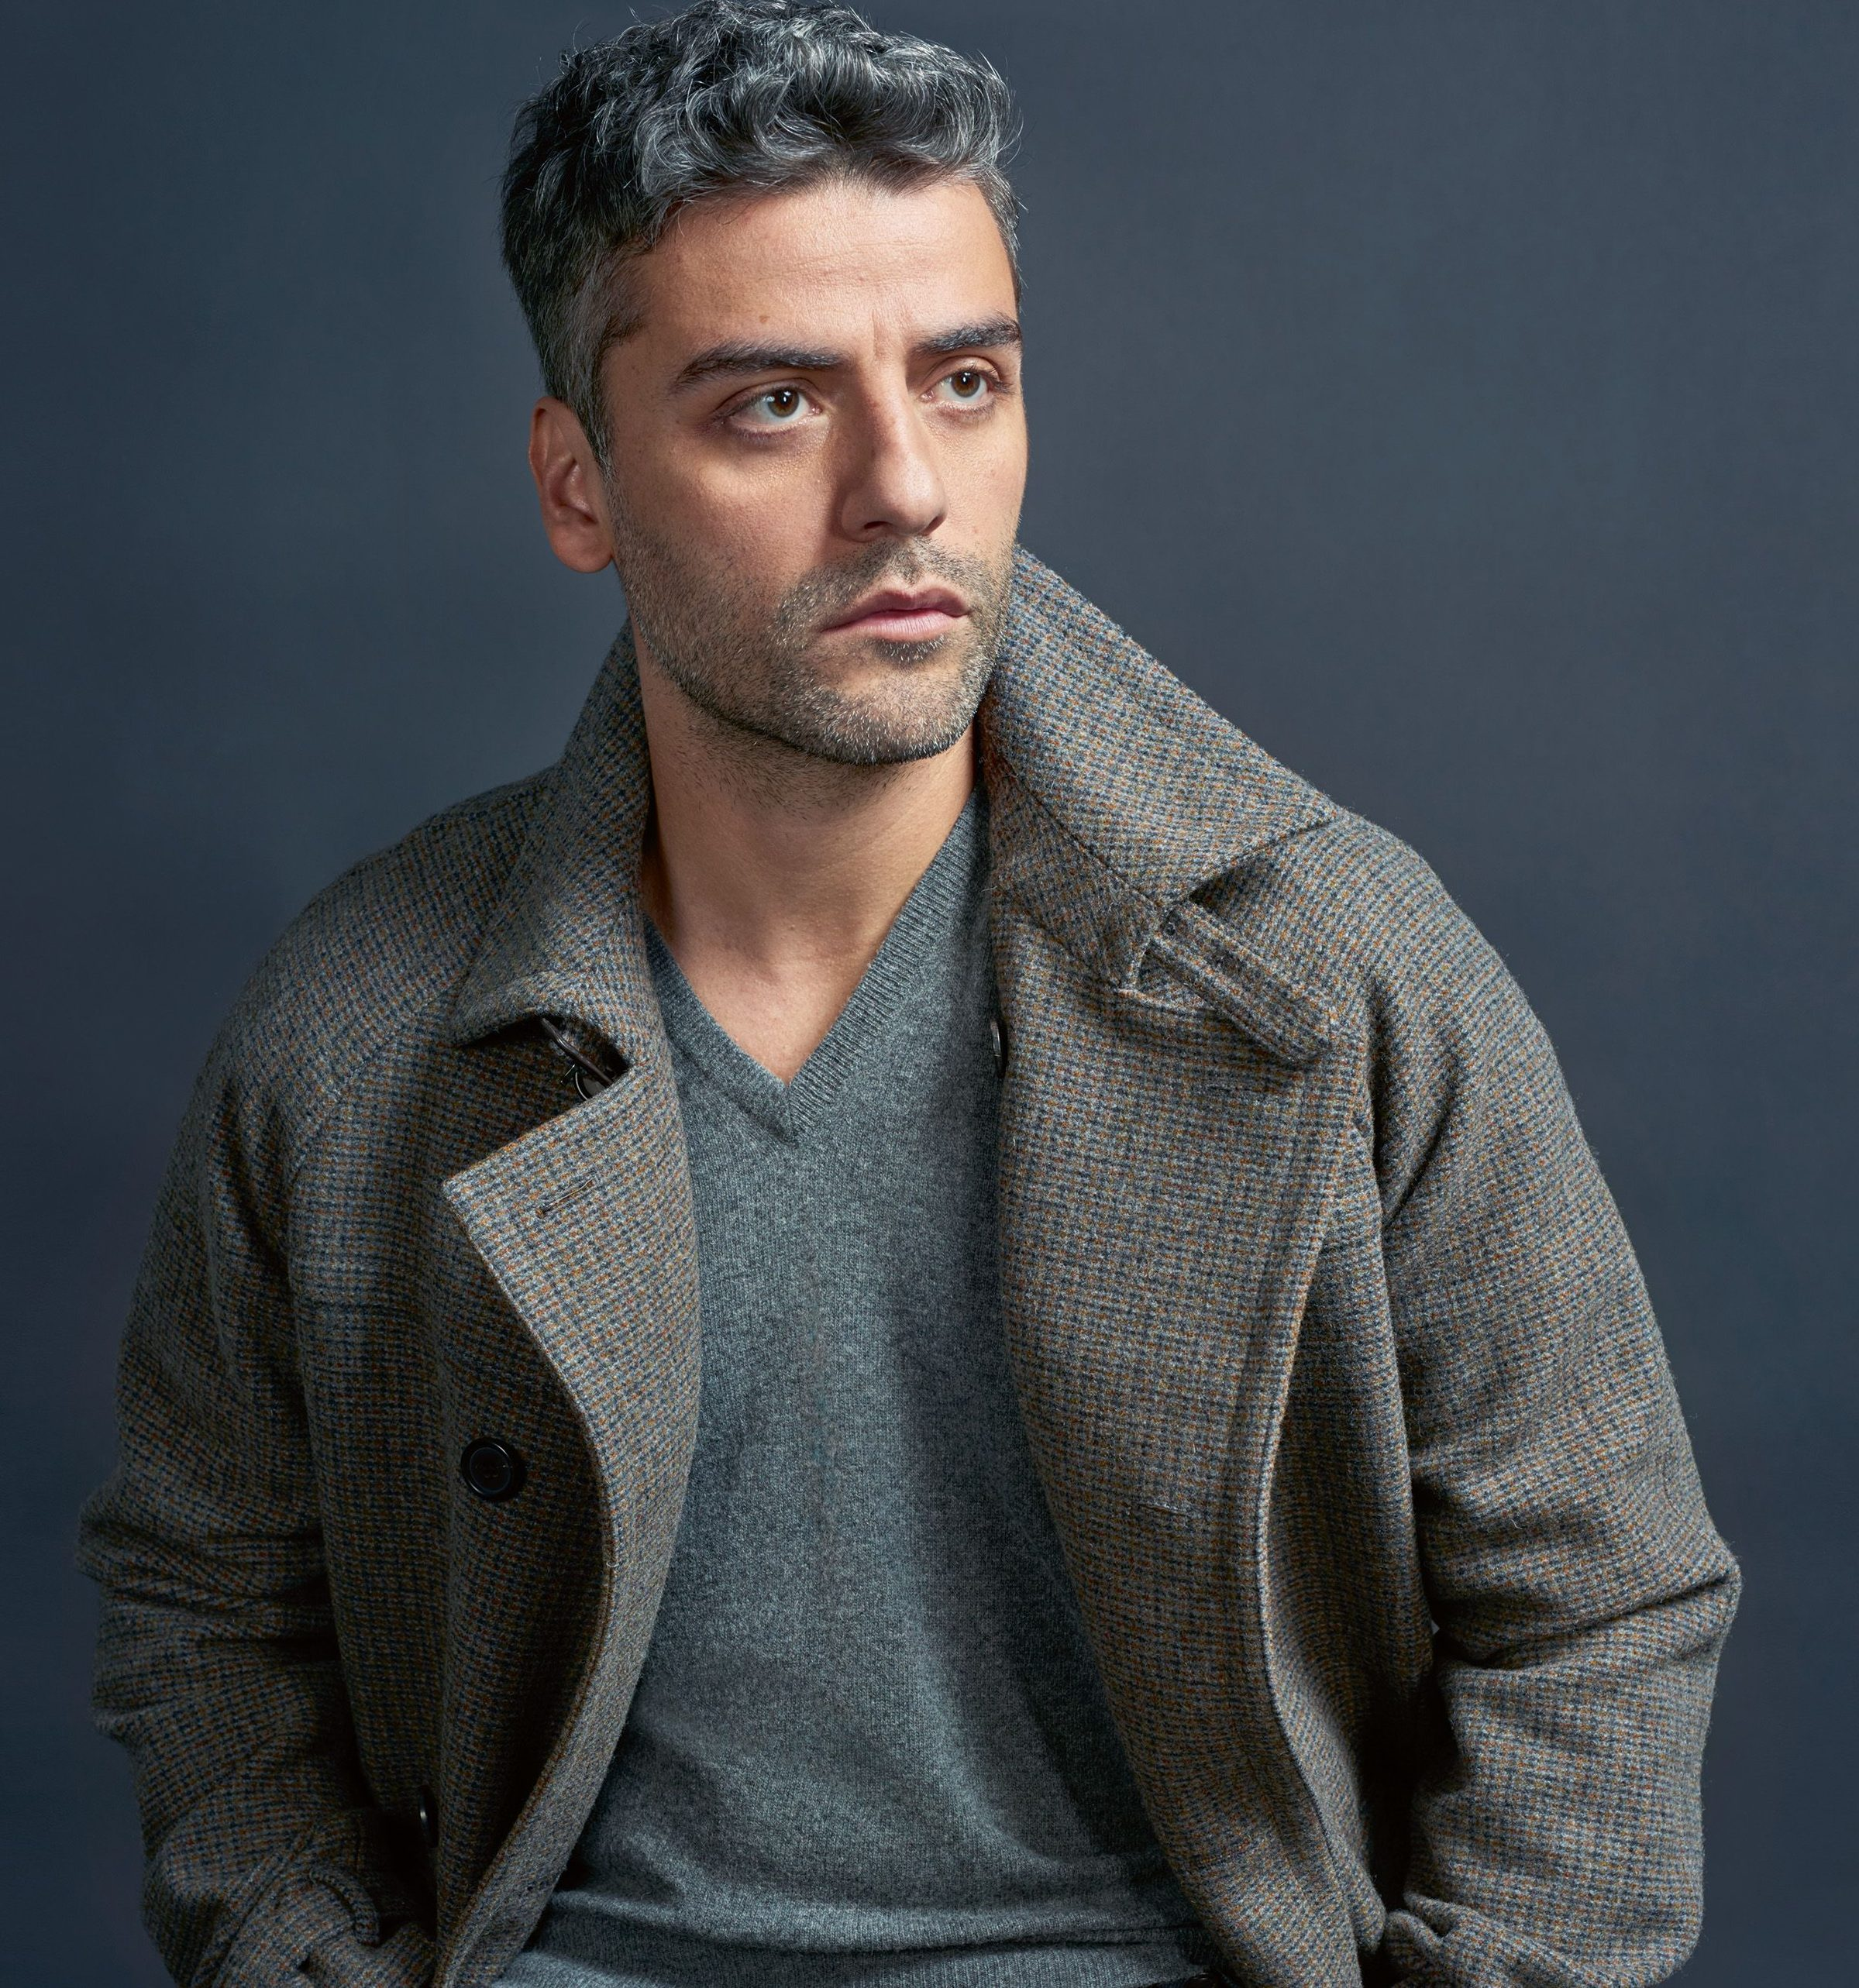 1510676380 oscar issac esquire interview main e1580133889102 20 Actors Who Would Kill It As The Next James Bond